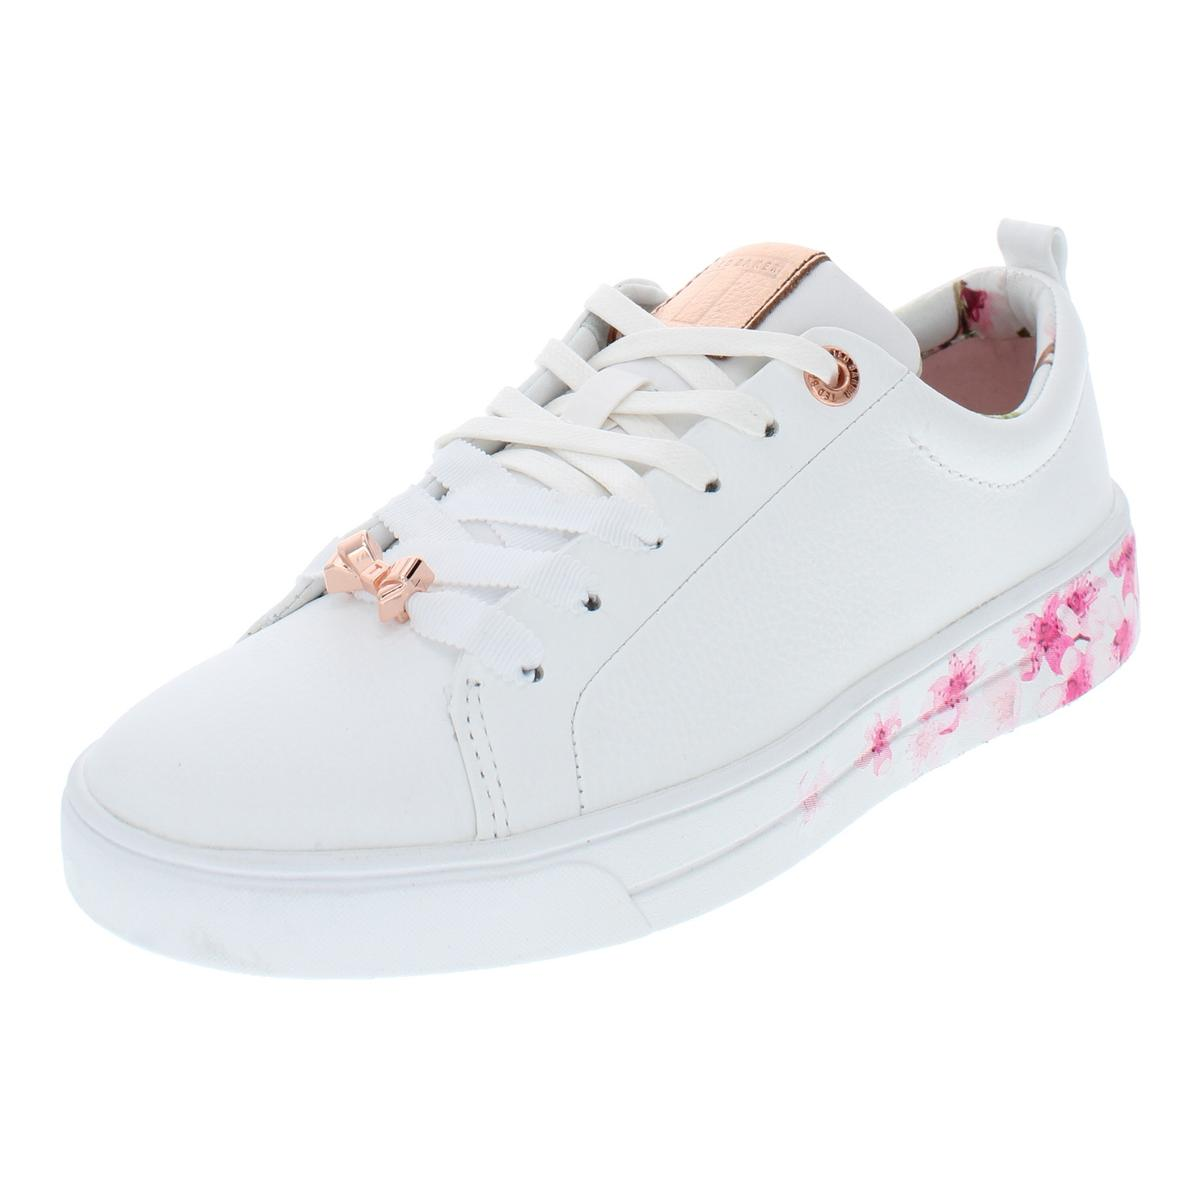 f3c637852 Details about Ted Baker Womens Kellep Leather Low Top Lace Up Fashion  Sneakers Shoes BHFO 3360